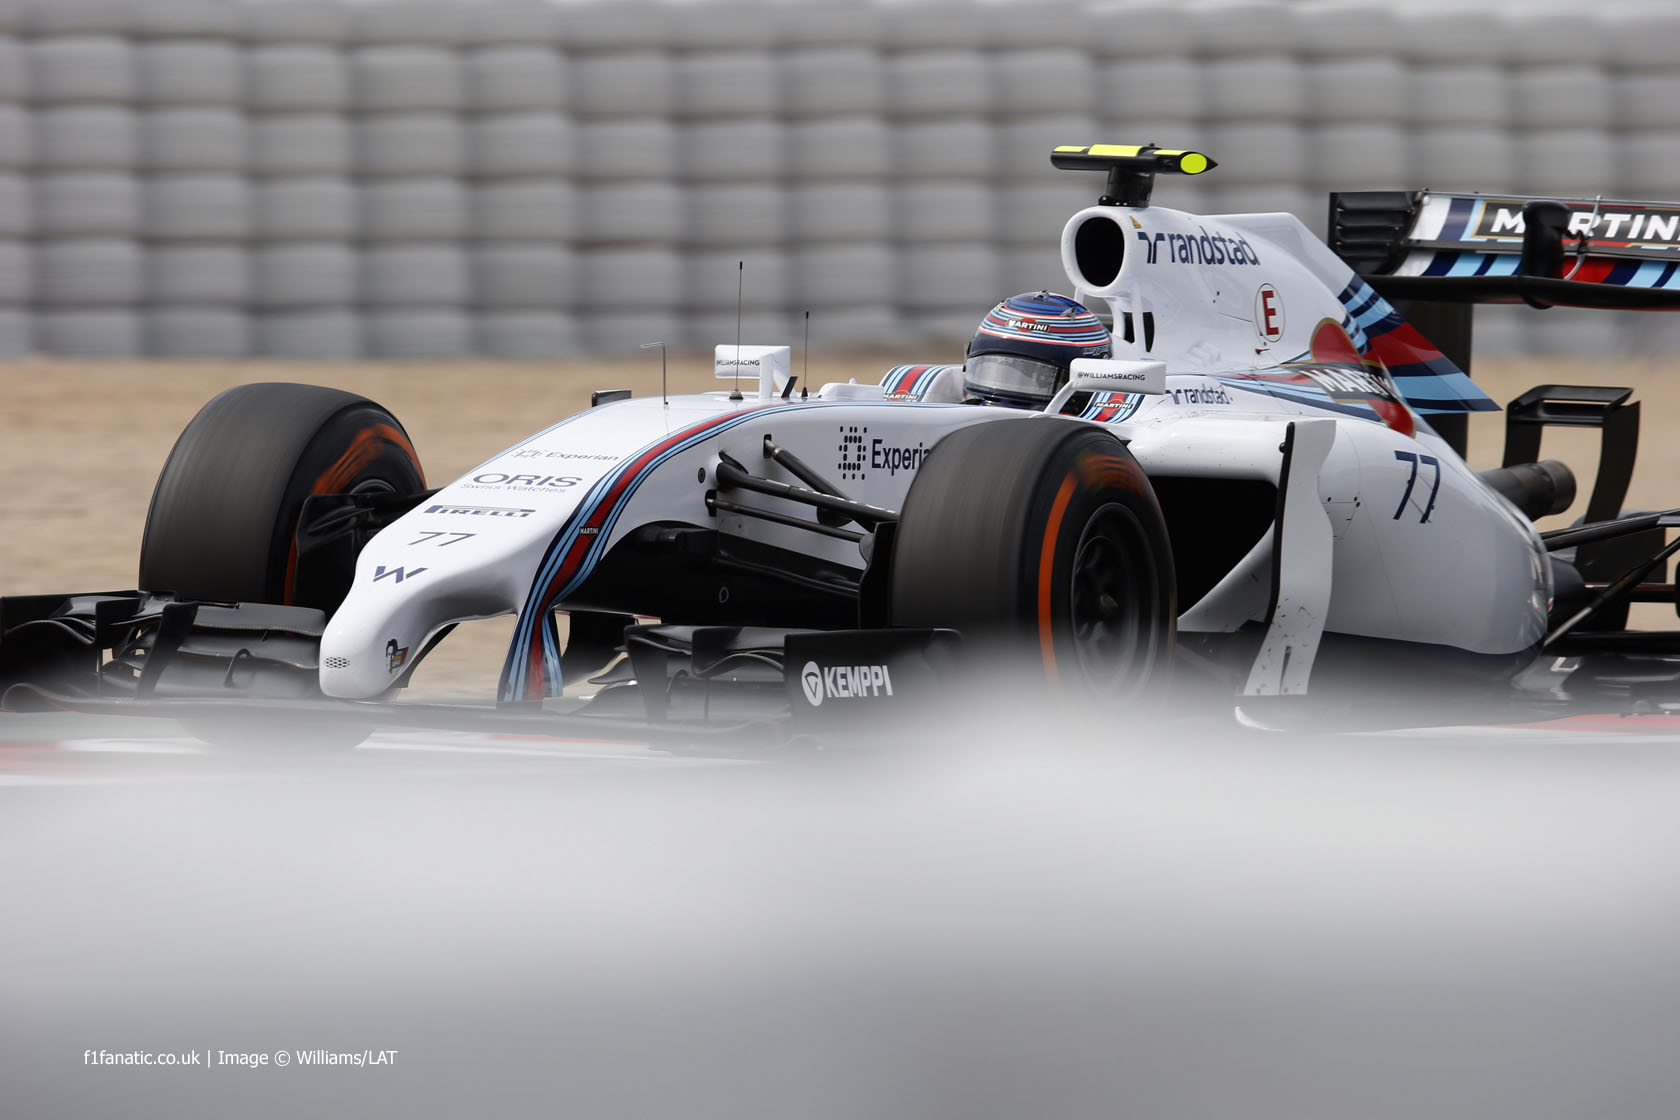 Valtteri Bottas, Williams, Circuit de Catalunya, 2014